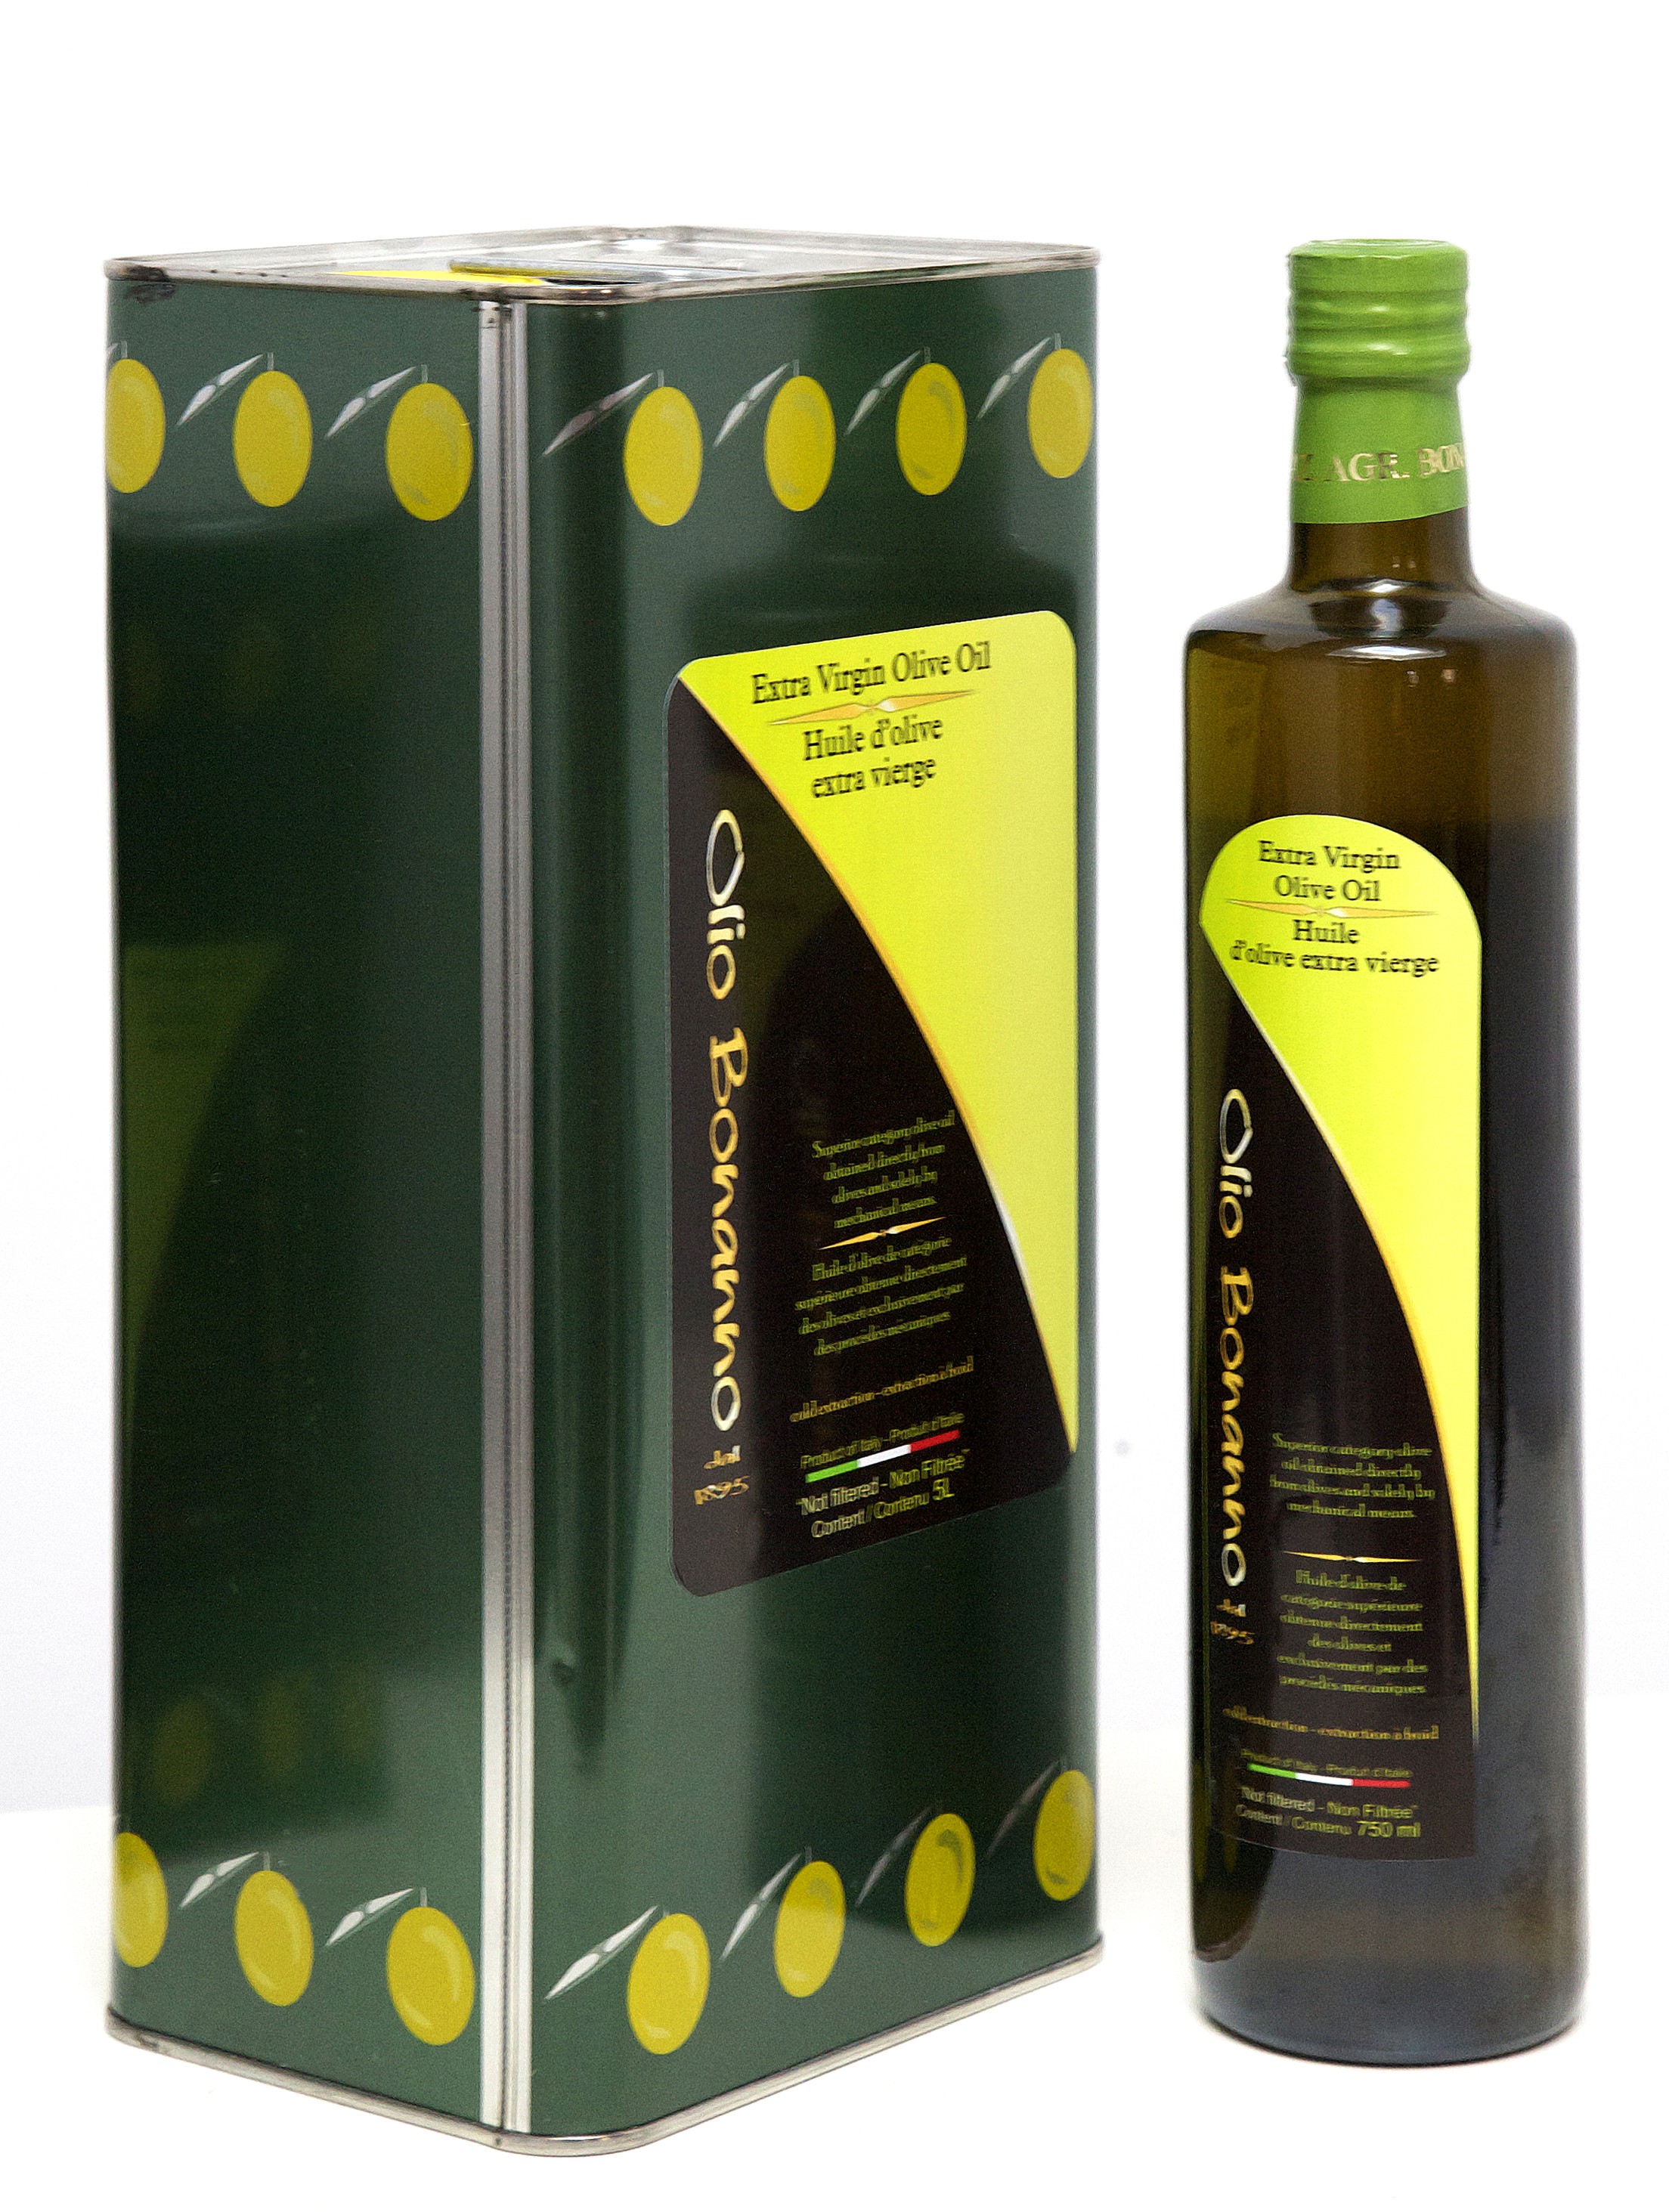 Olive Oil - Gourmet Italian pasta and sauces, Prepared take